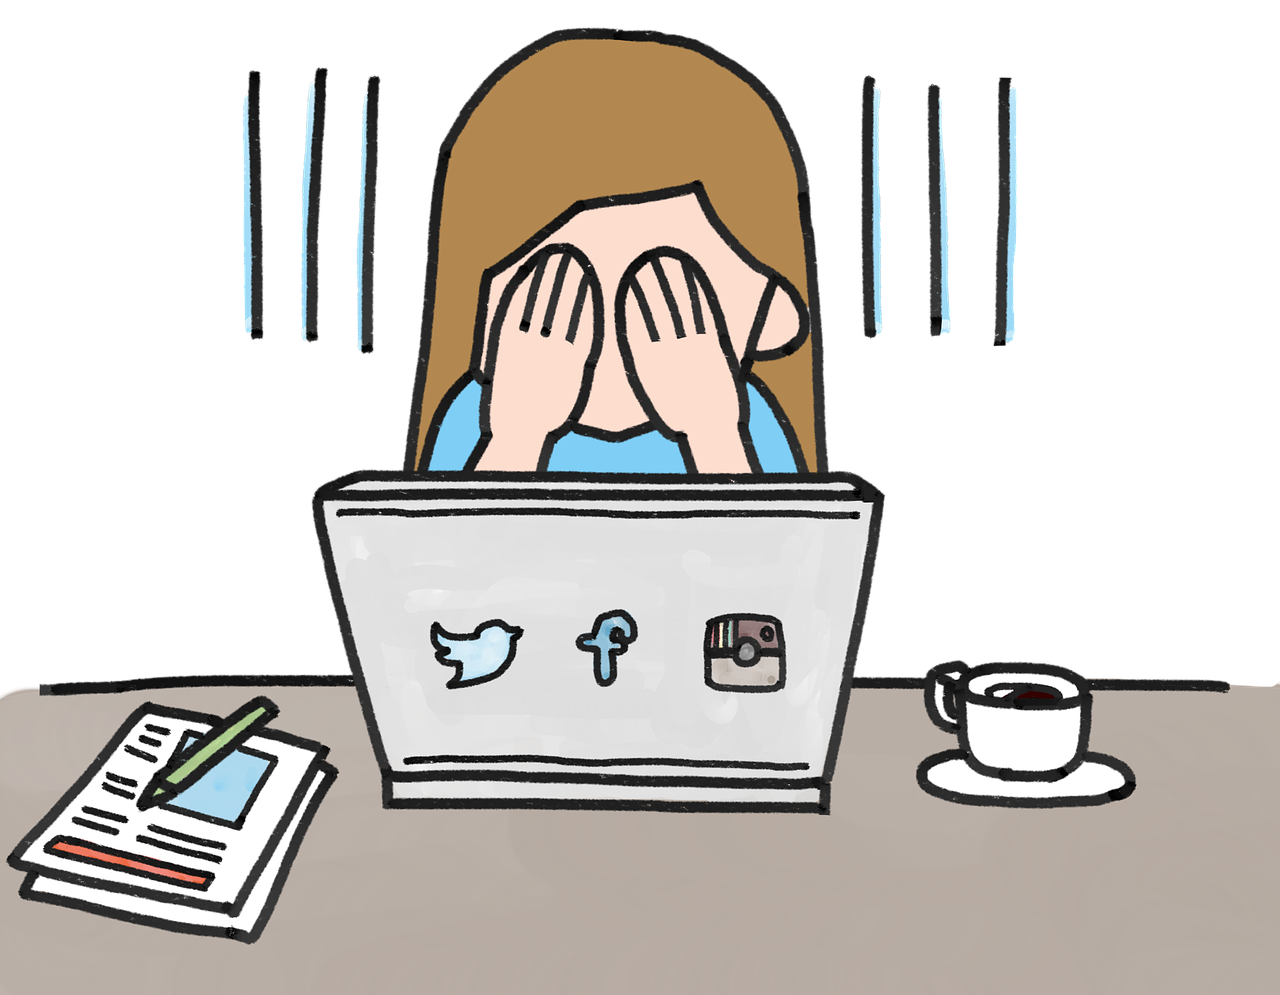 The psychology of social. Earthquake clipart dilapidated